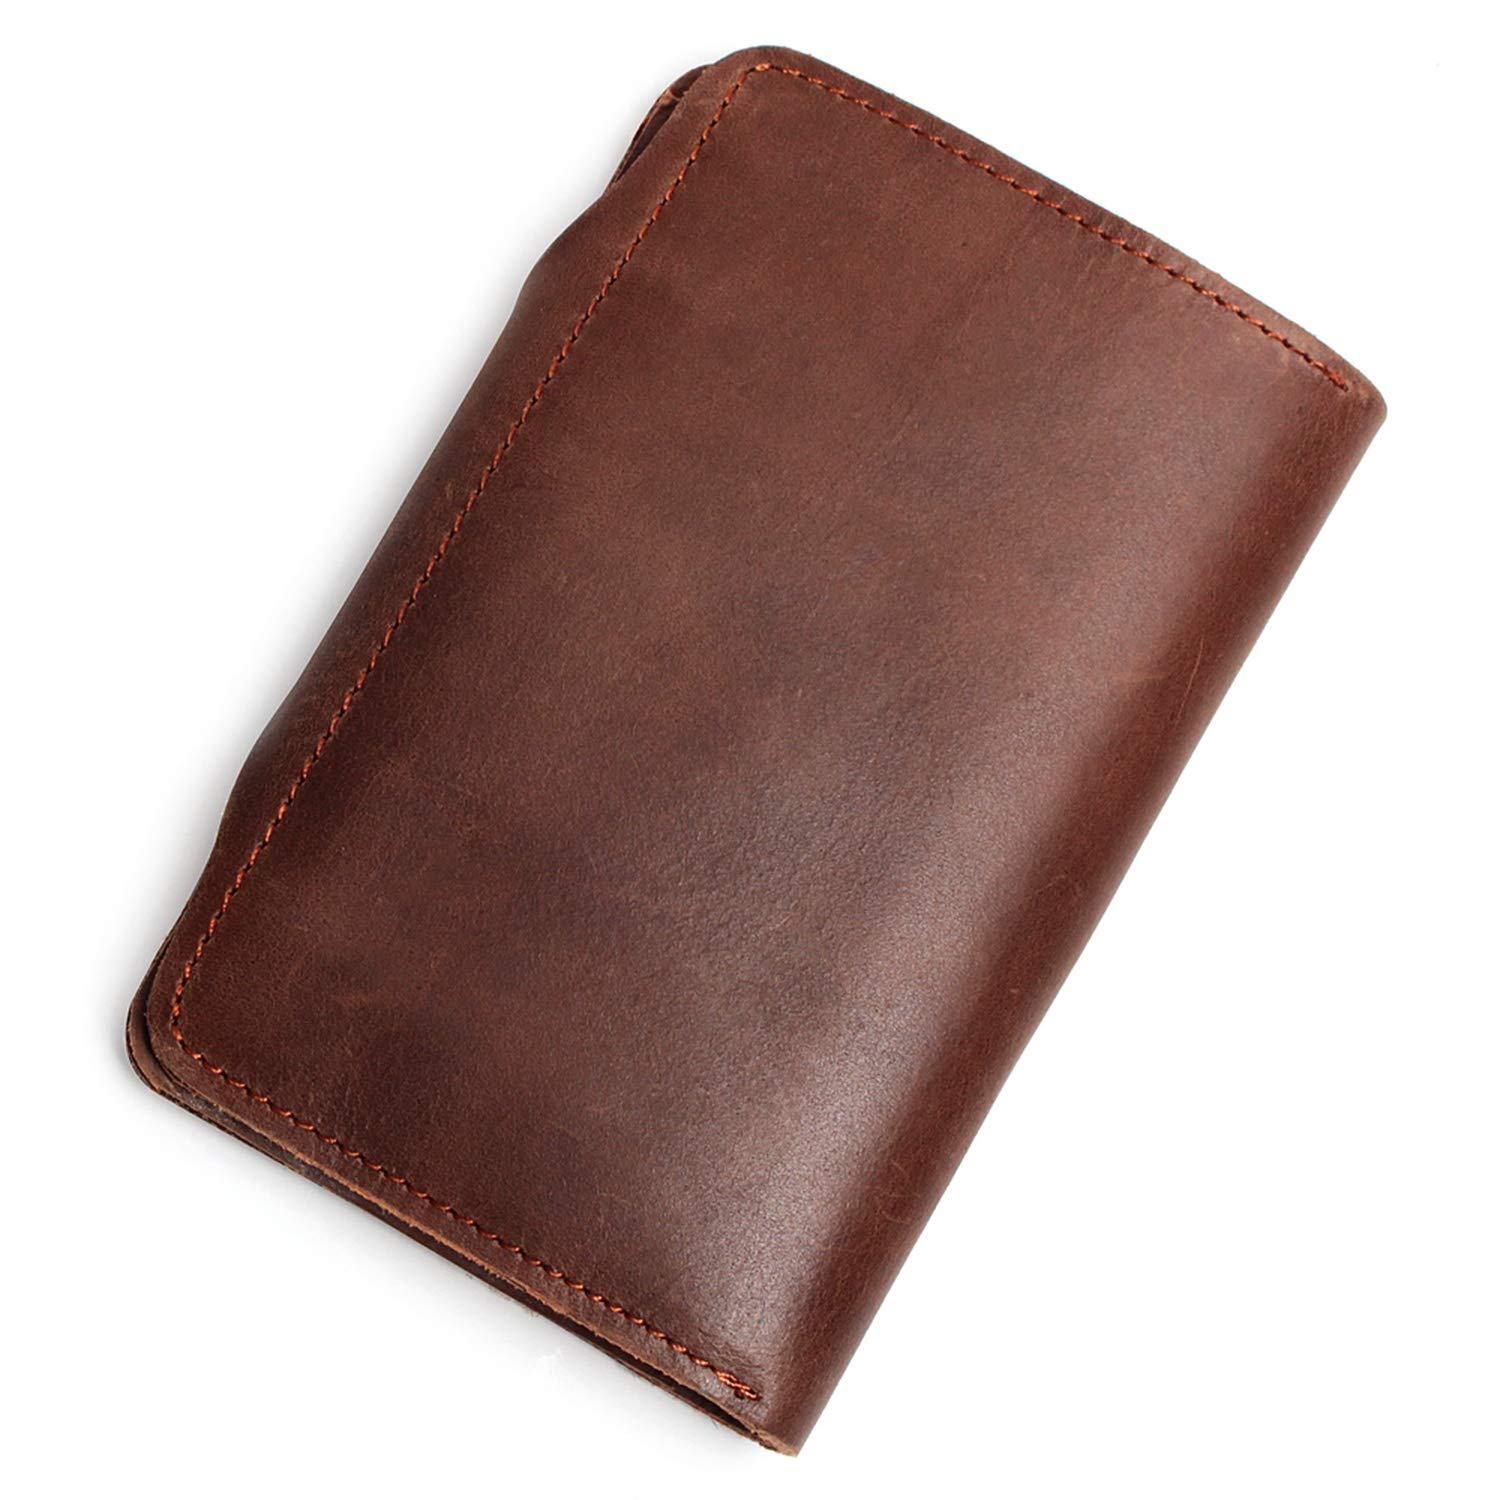 The First Layer Cowhide Wallet Mens Multi-Function Long-Distance Travel Wallet Skin Multi-Card Fashion Mens Retro